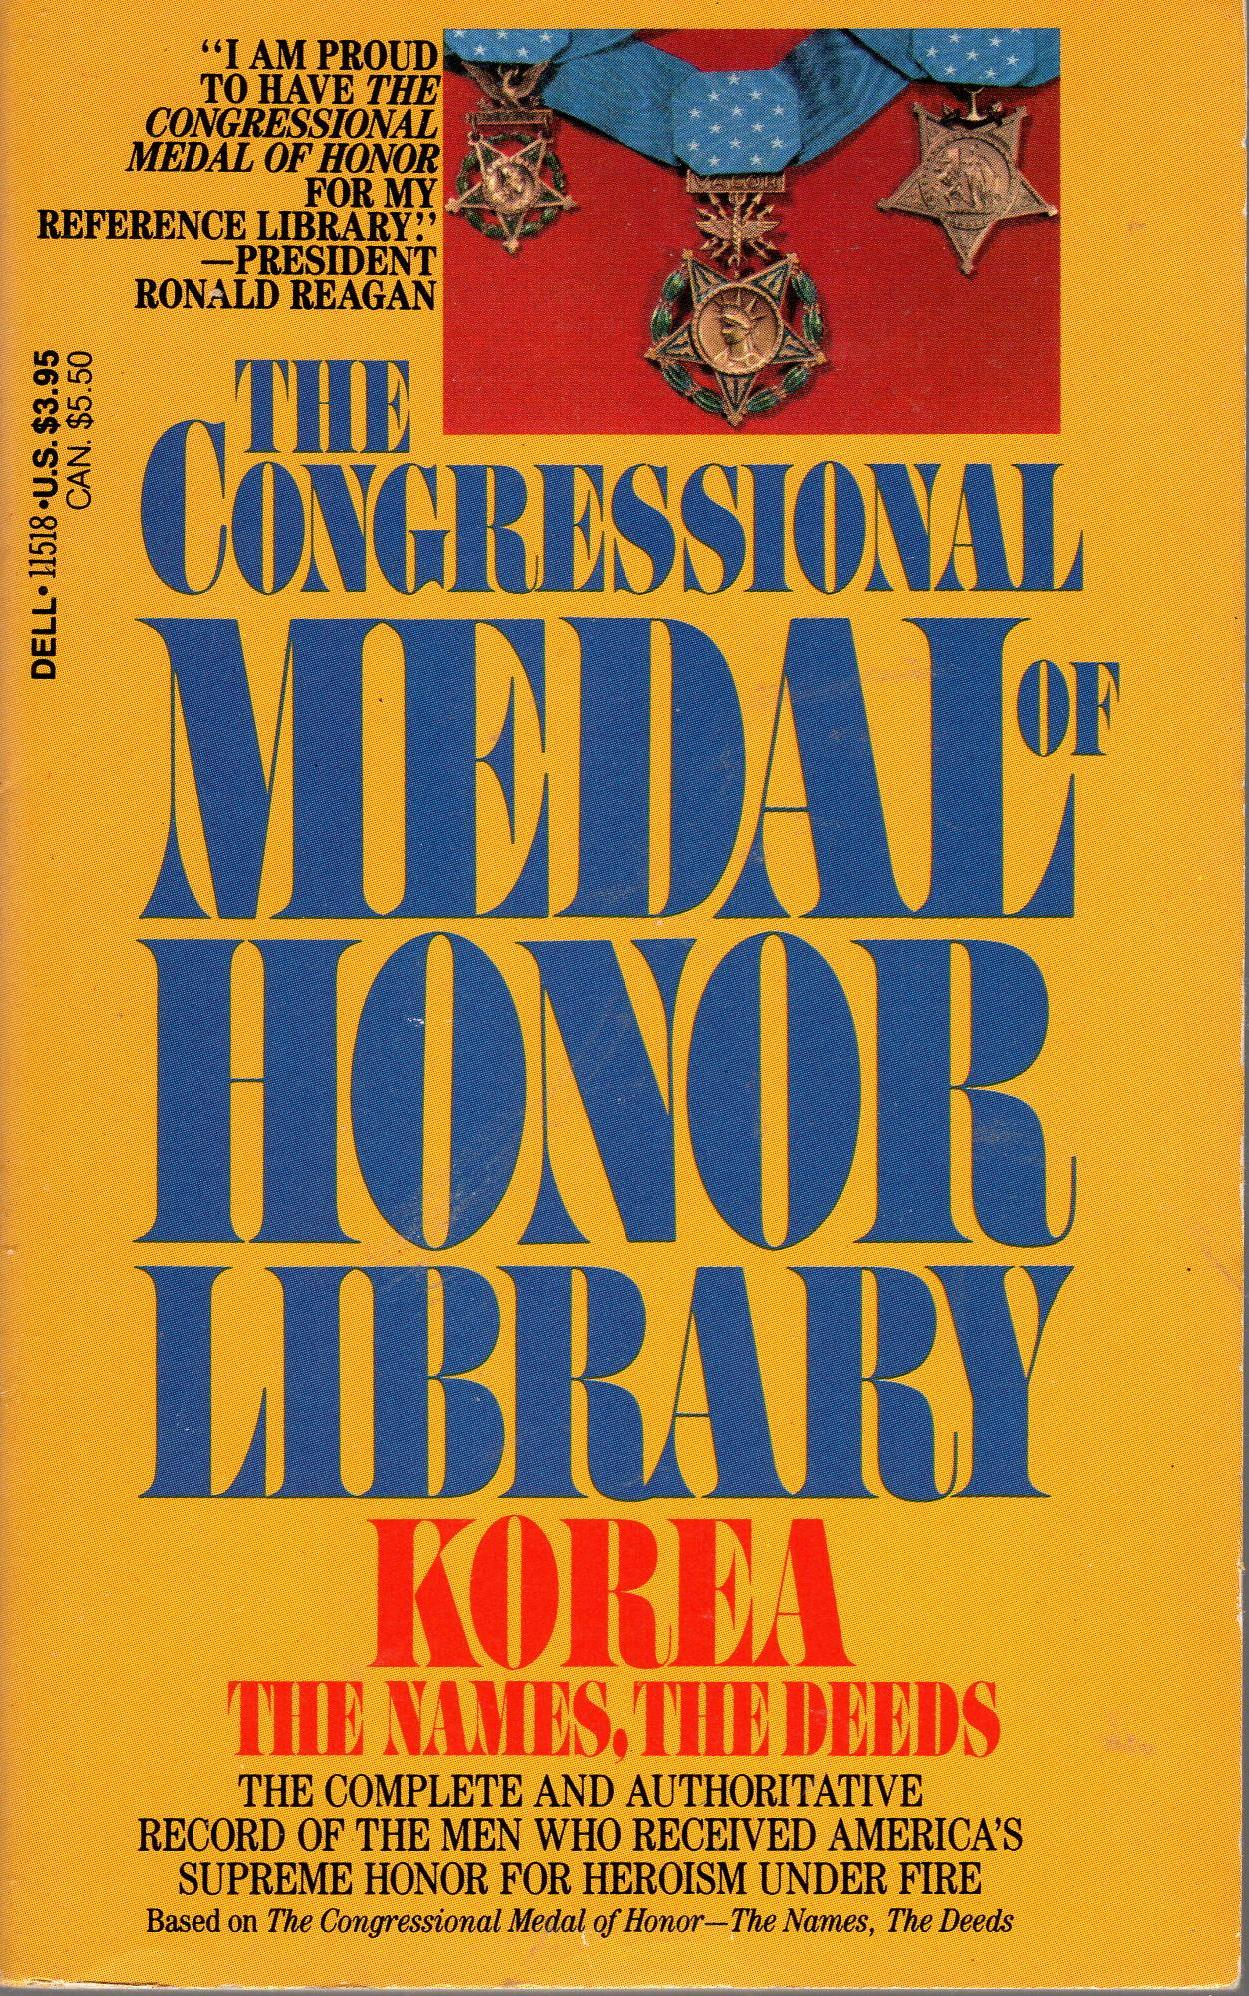 Image for CONGRESSIONAL MEDAL OF HONOR LIBRARY